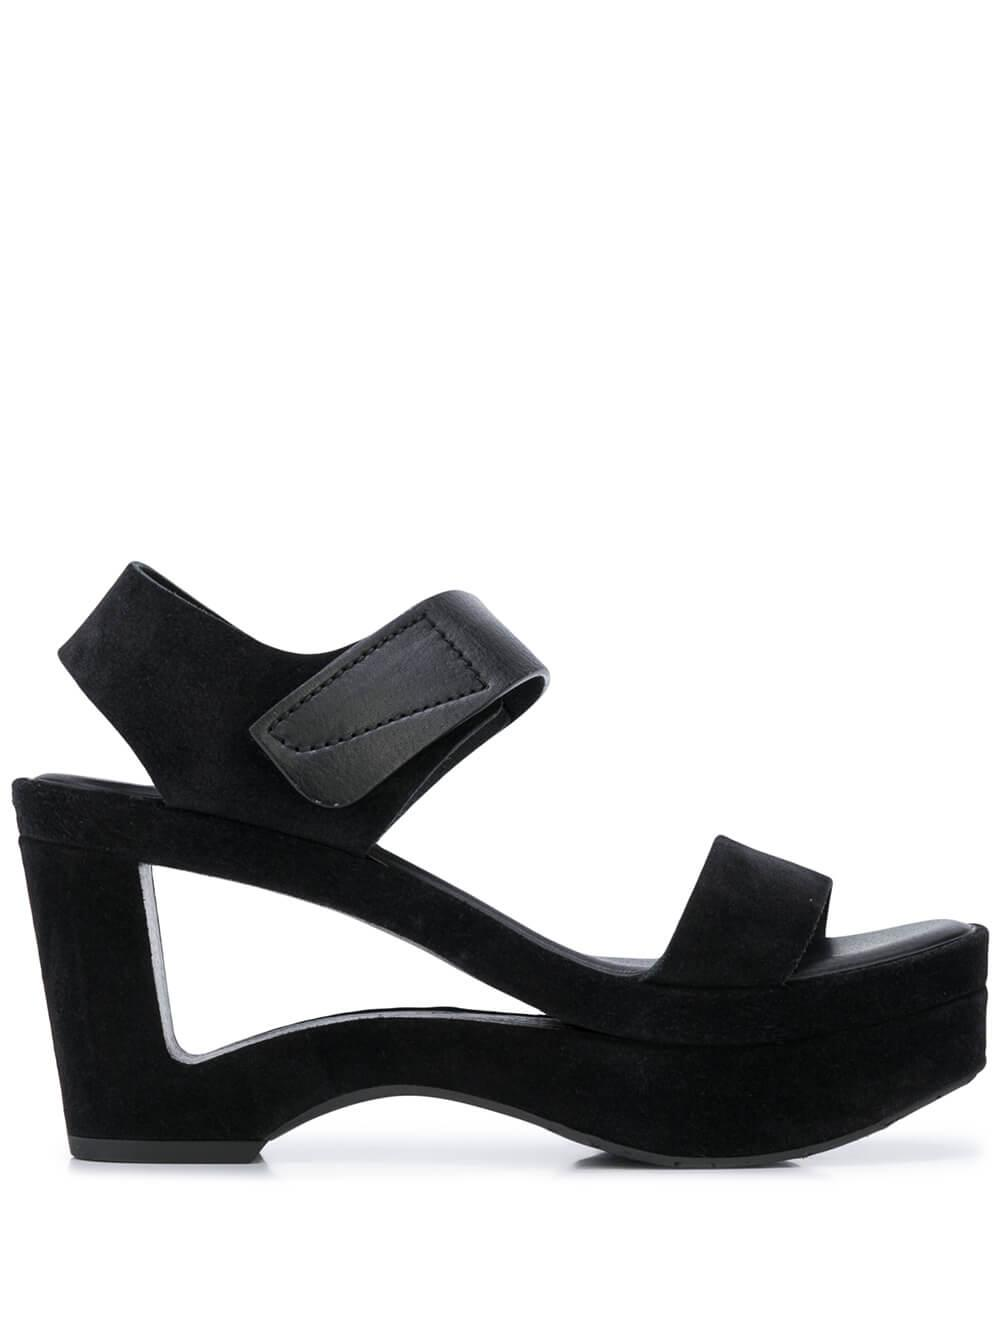 Platform Sandal With Cutout Wedge Item # FRIEDE